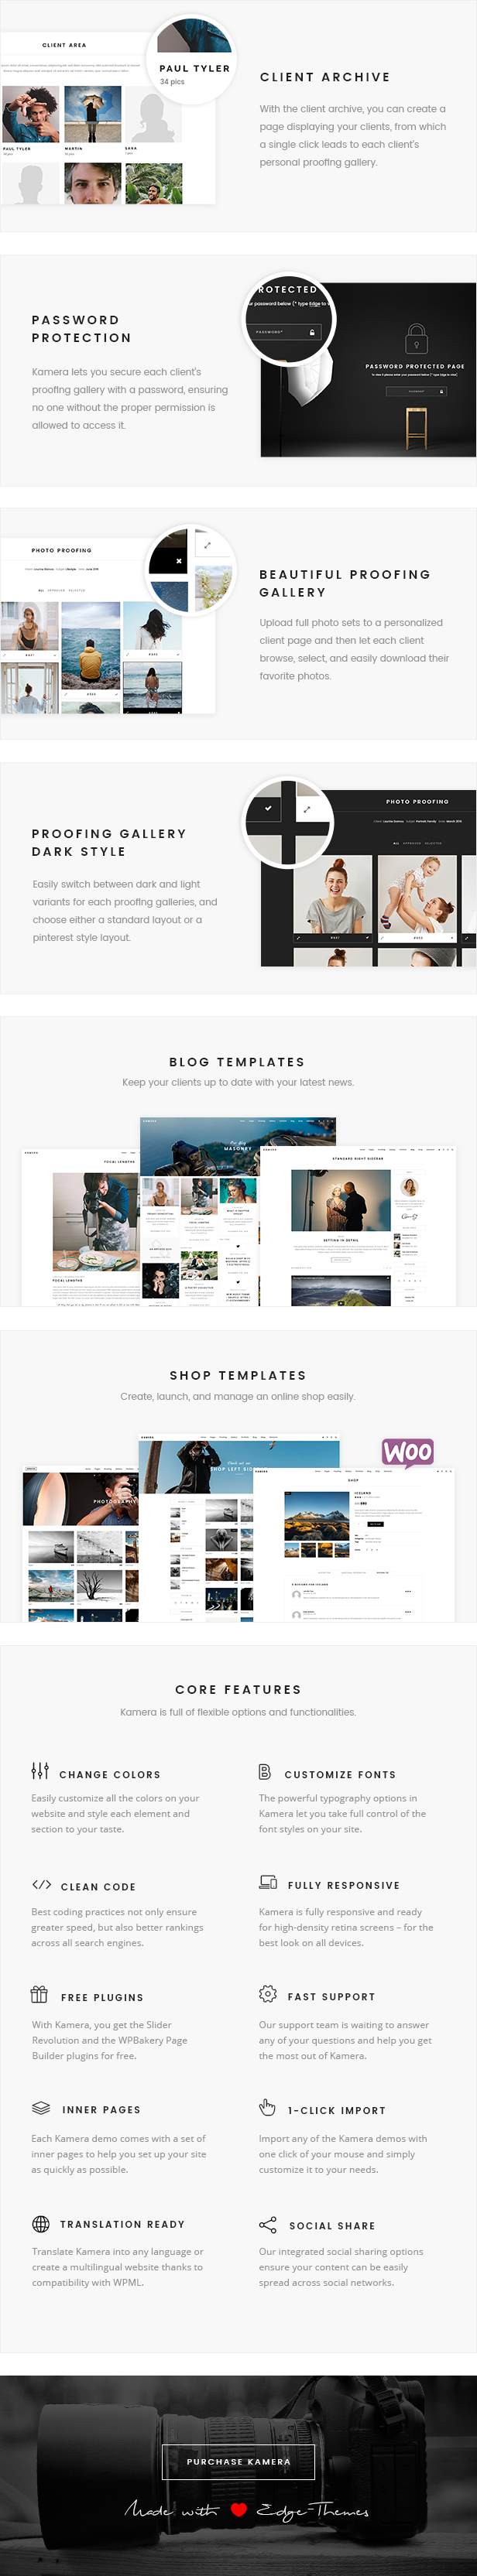 Kamera - Multi-Concept Photography Theme - 9